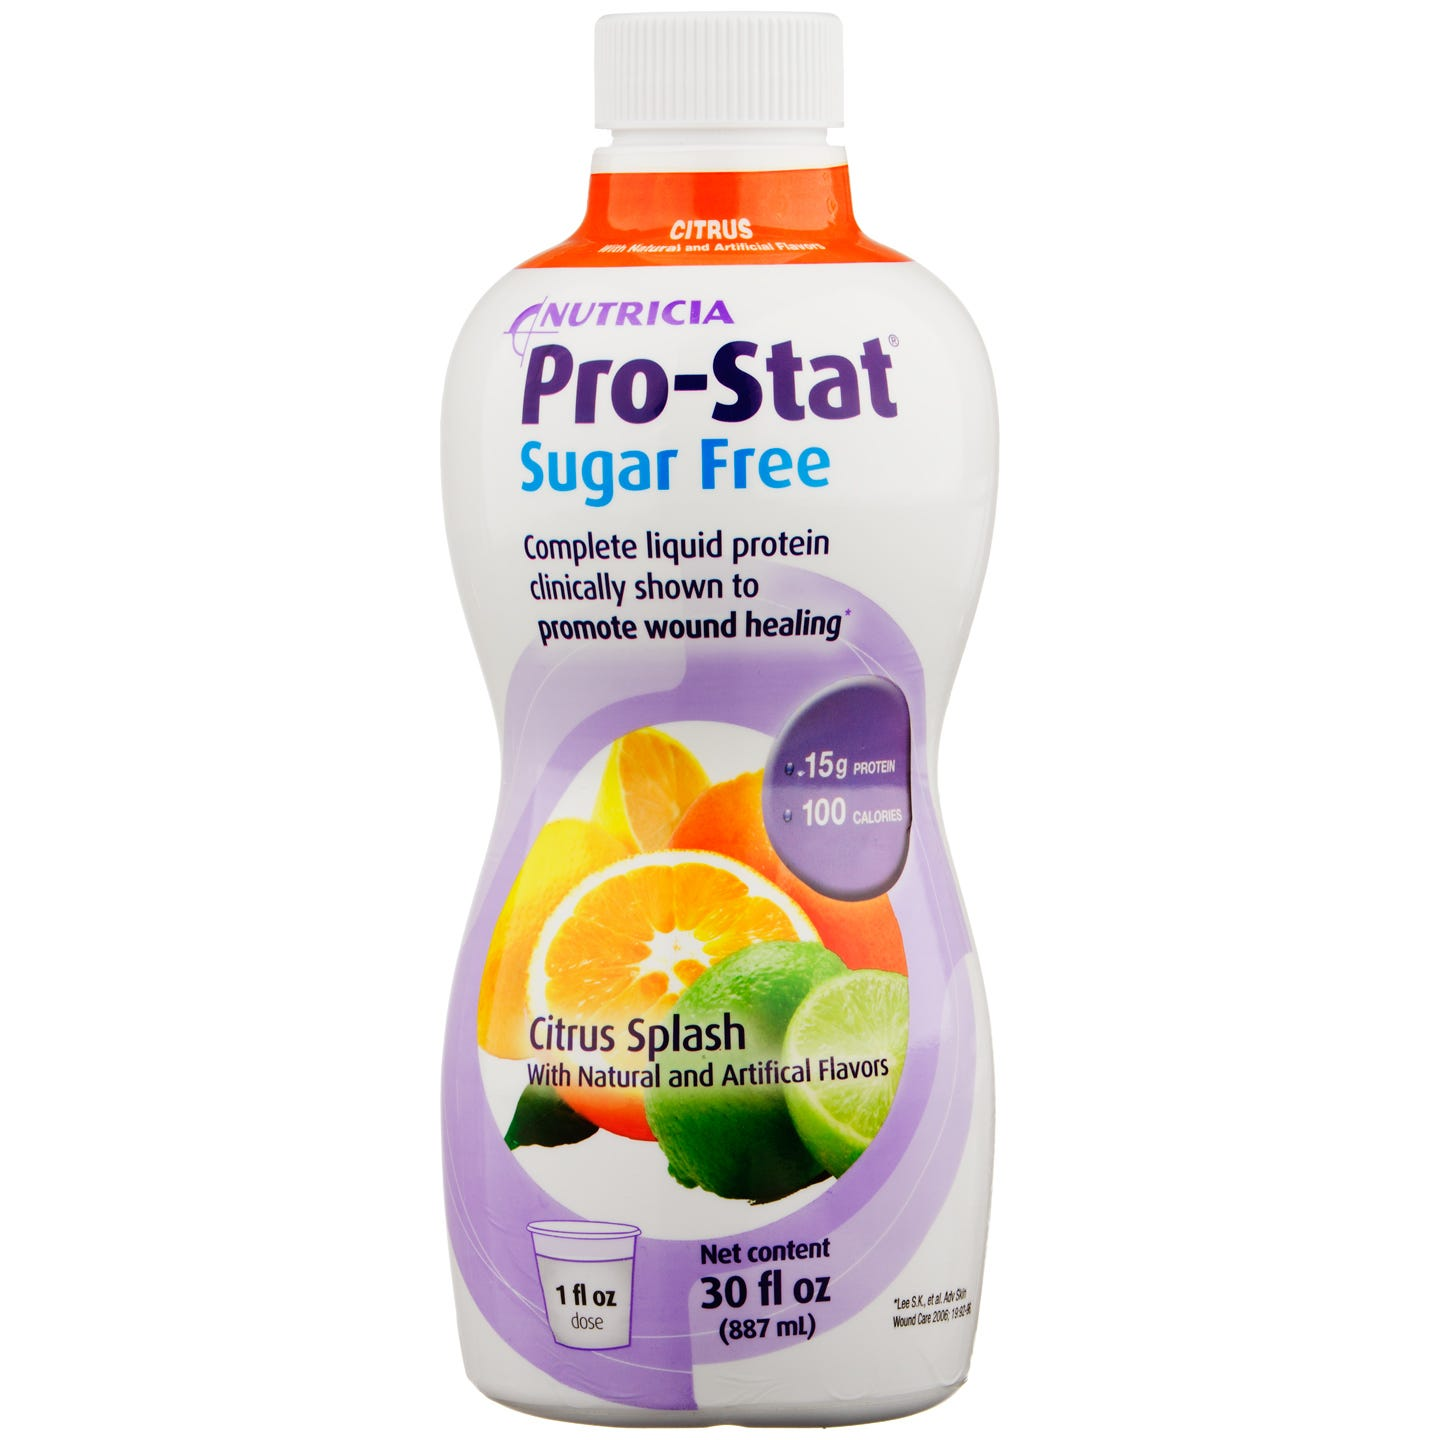 Pro-Stat Sugar Free Liquid Protein Citrus Splash Flavor 30 fl oz - Rapid Diet Weight Loss Products Shop